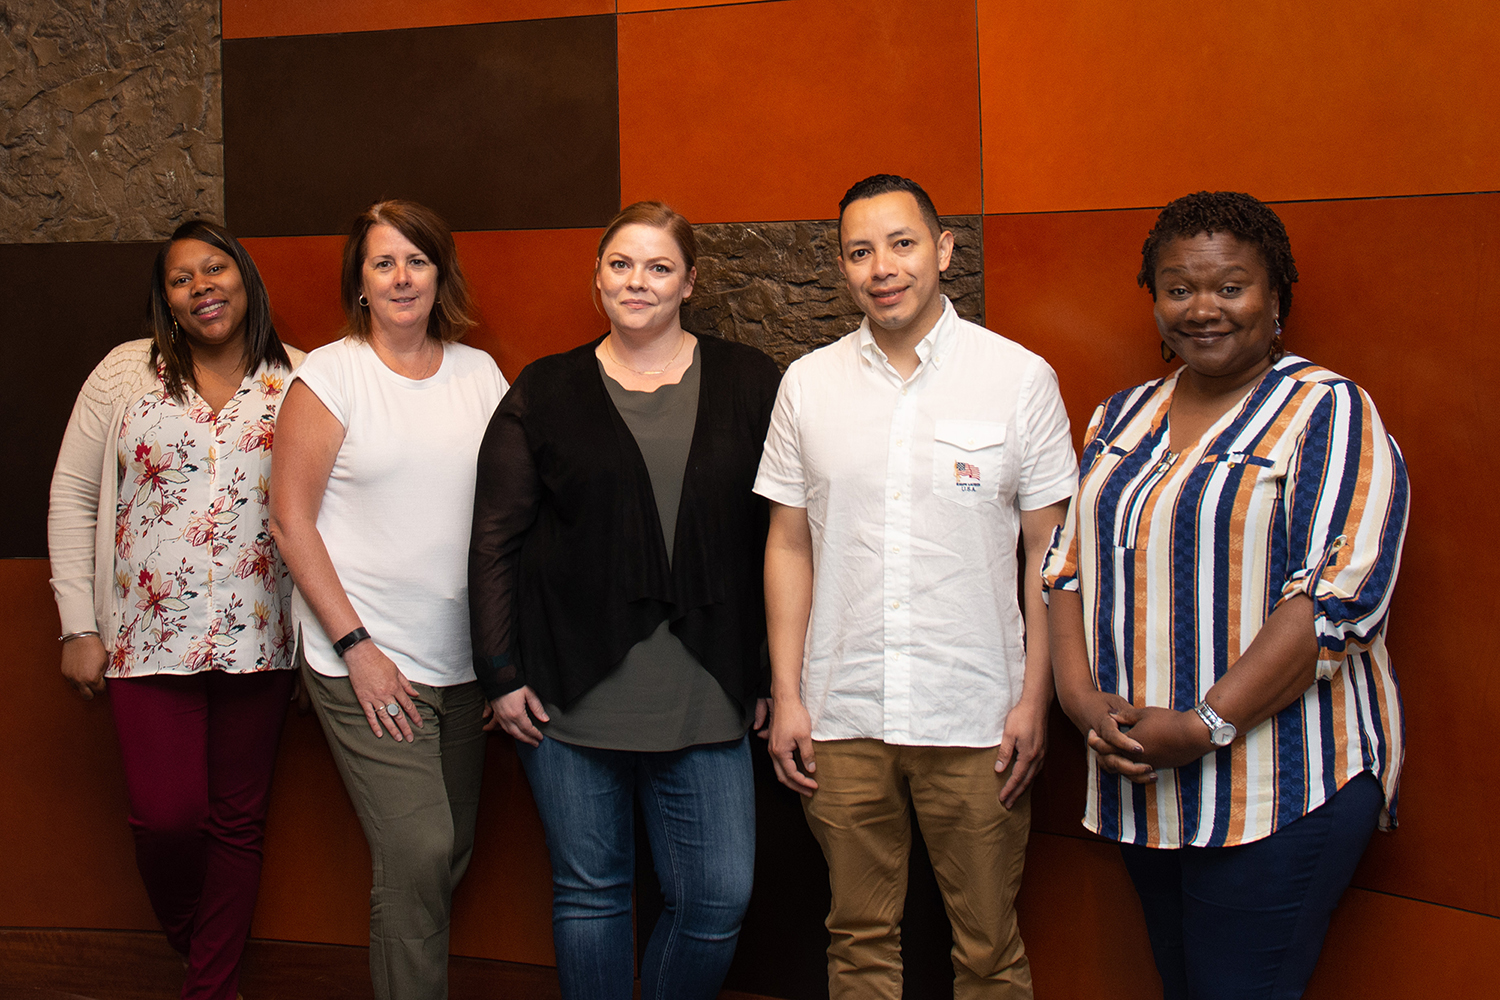 Phograph of 2019 ASWB Continuing Competence Committee